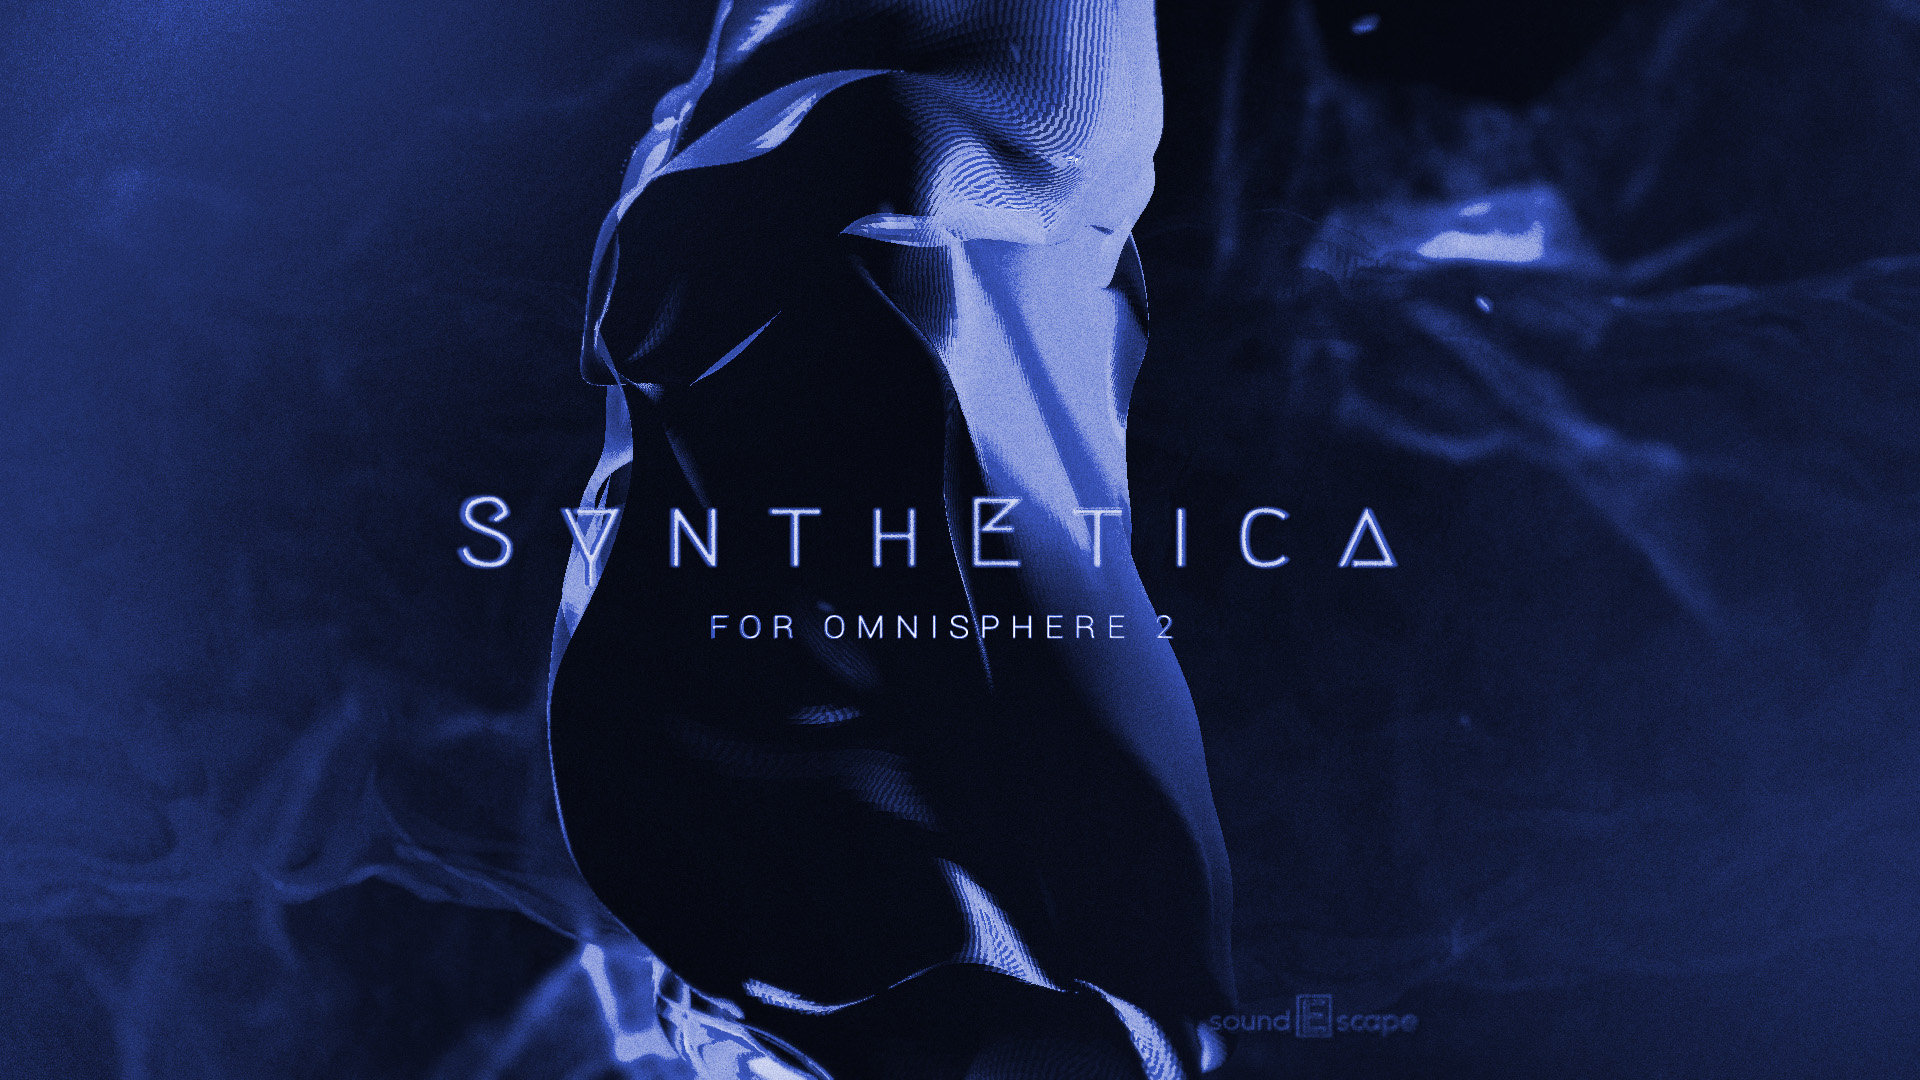 Synthetica for Omnisphere 2 – Soundescape